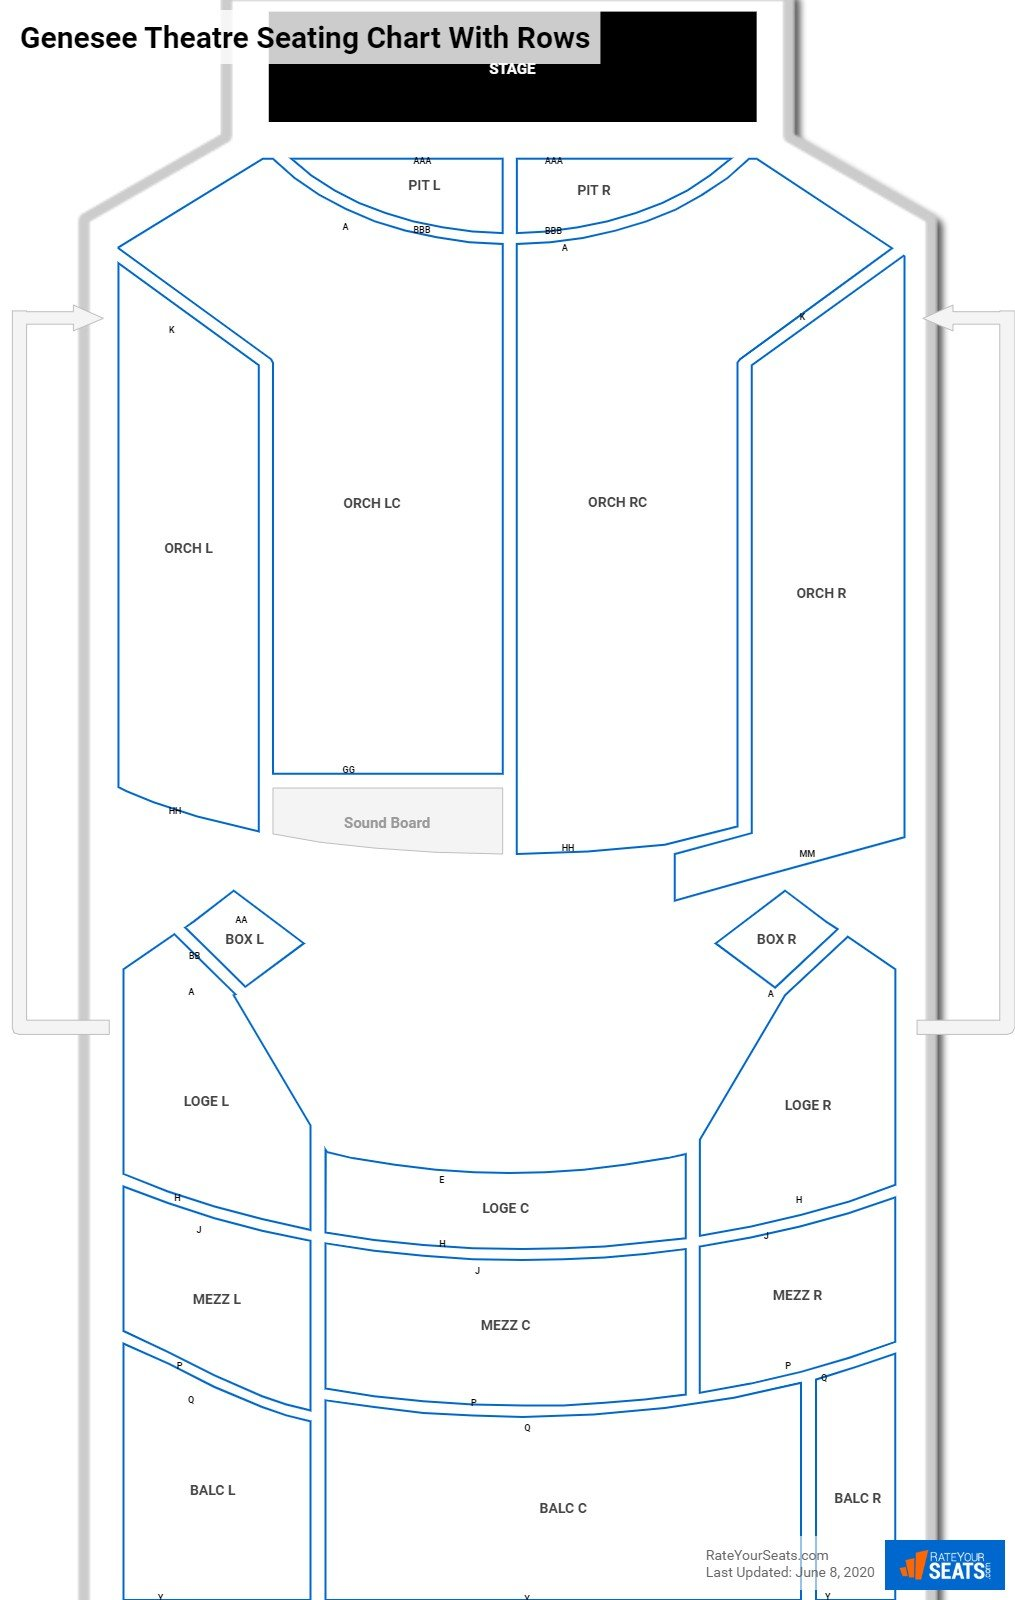 Genesee Theatre seating chart with rows